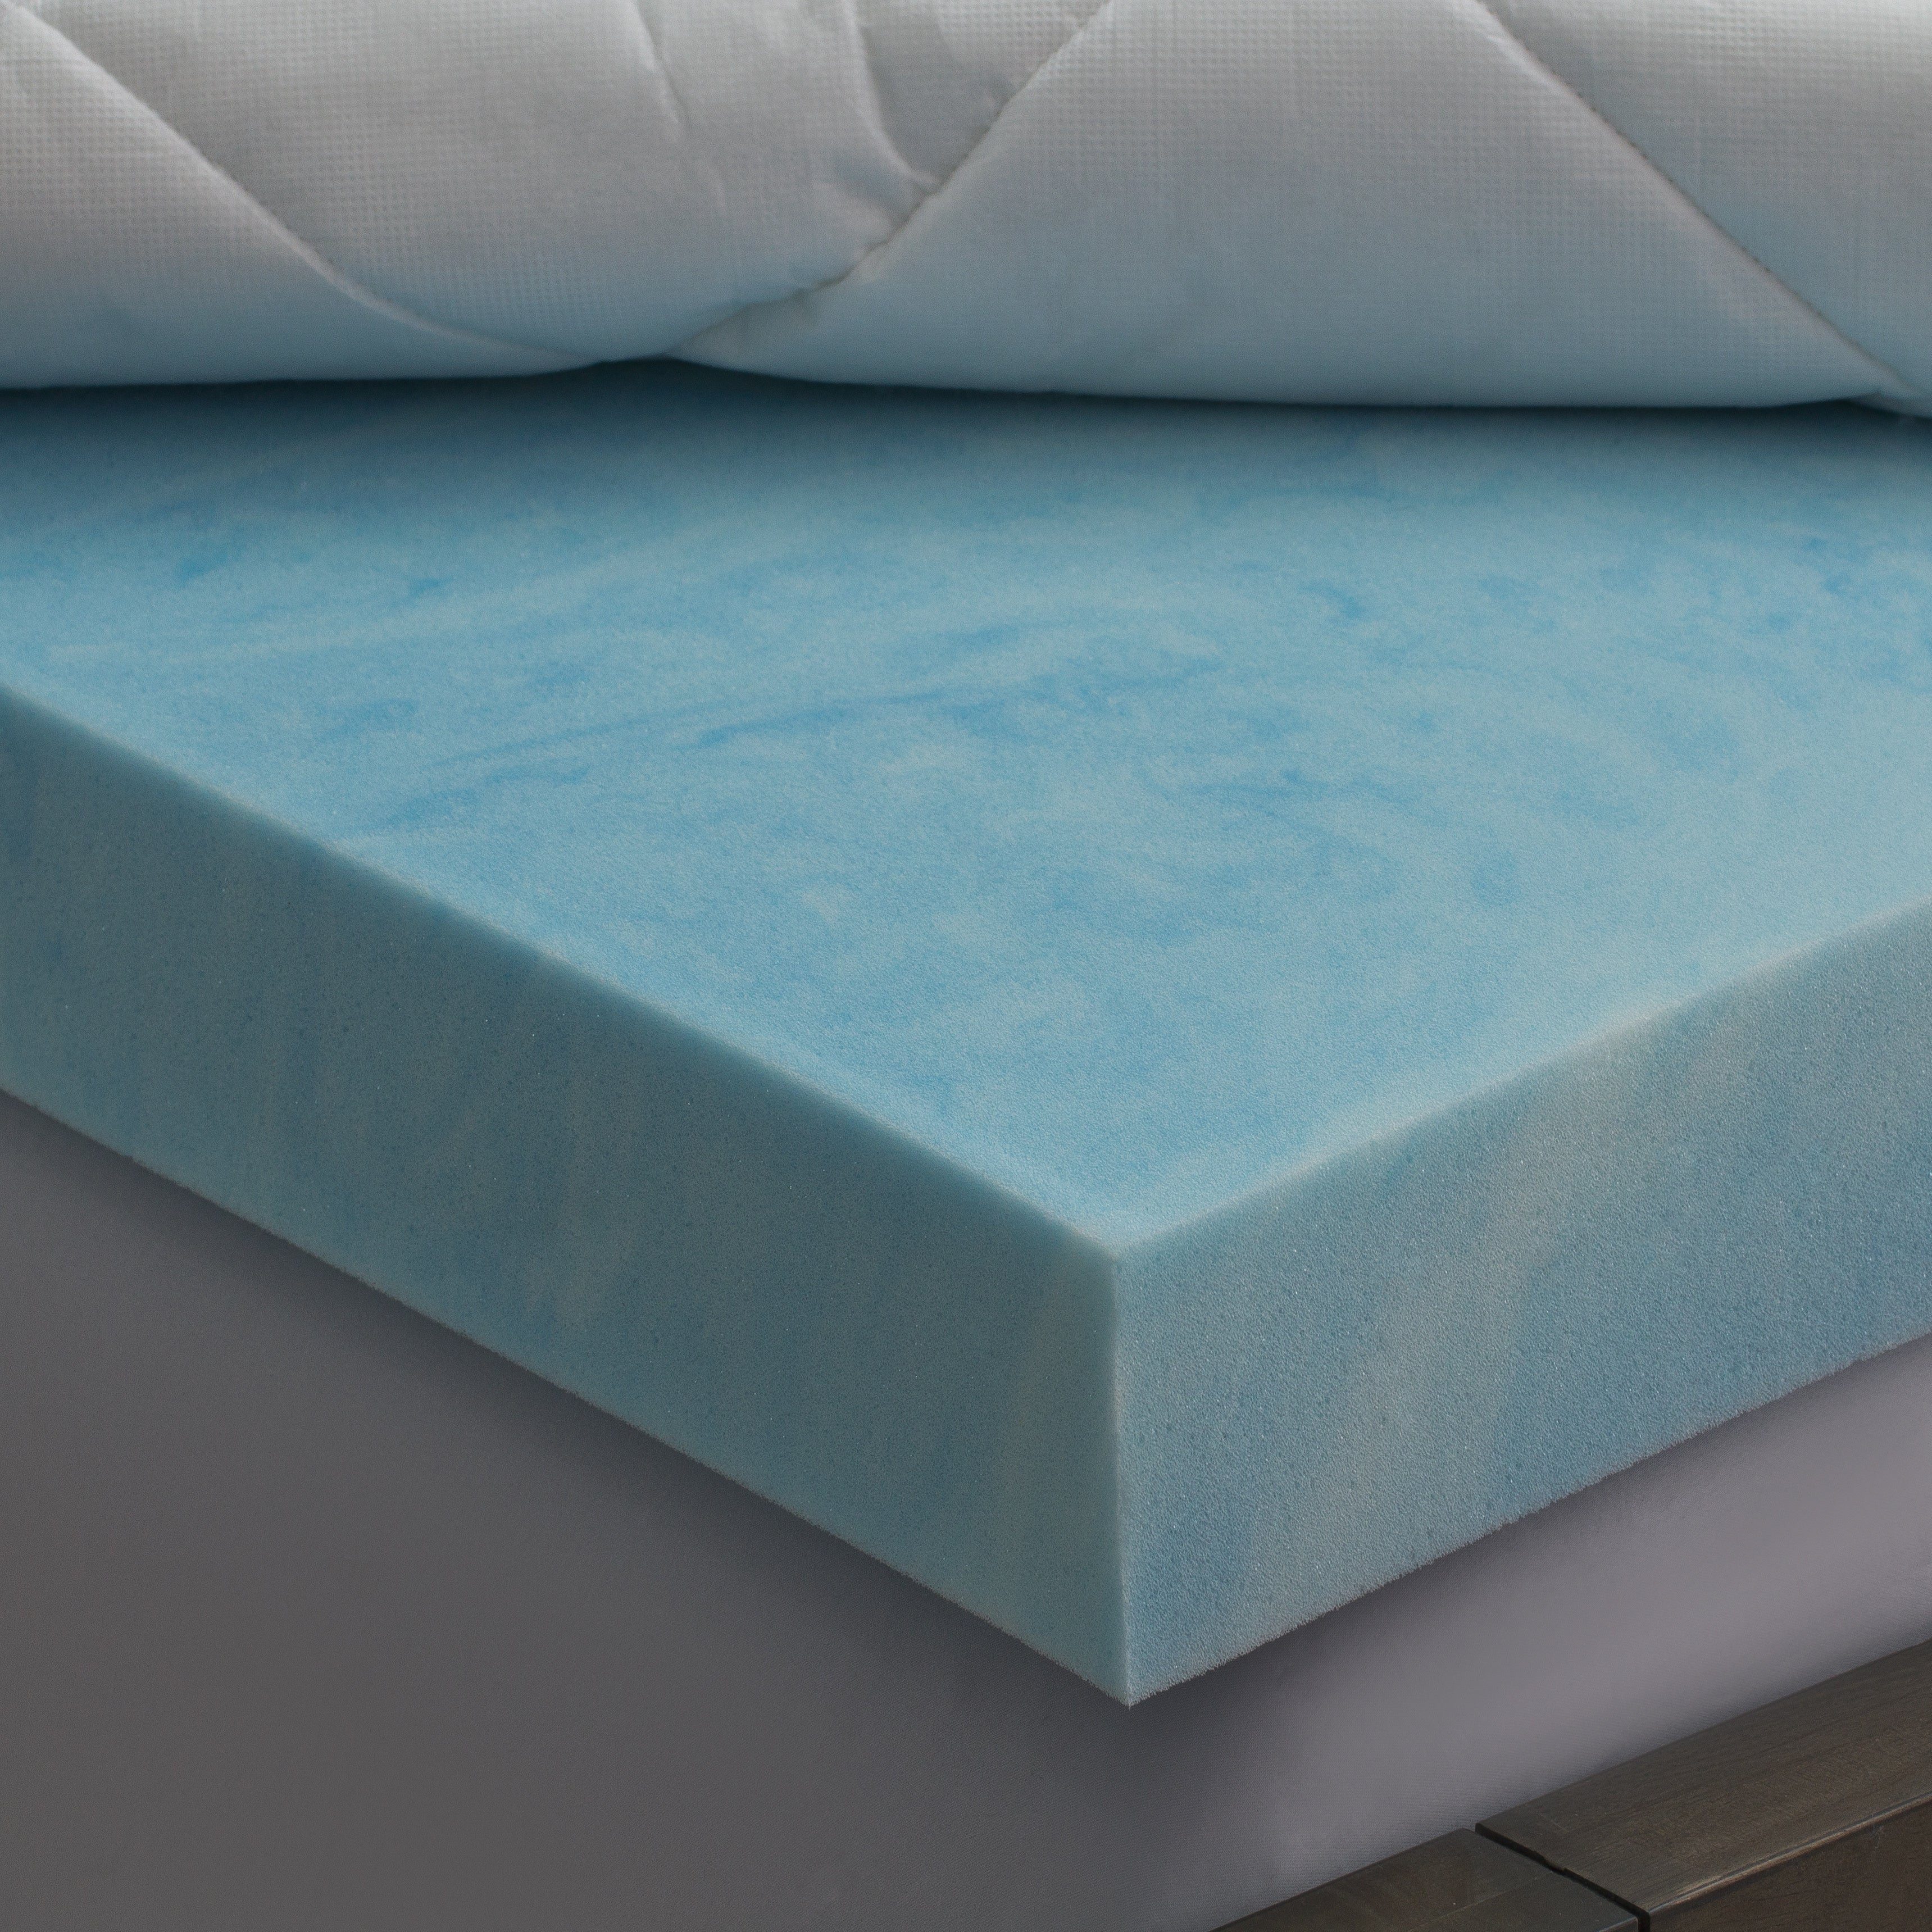 deluxe fiber foam cotton bath today mattress and overstock inch free topper blend product bedding memory shipping swisslux